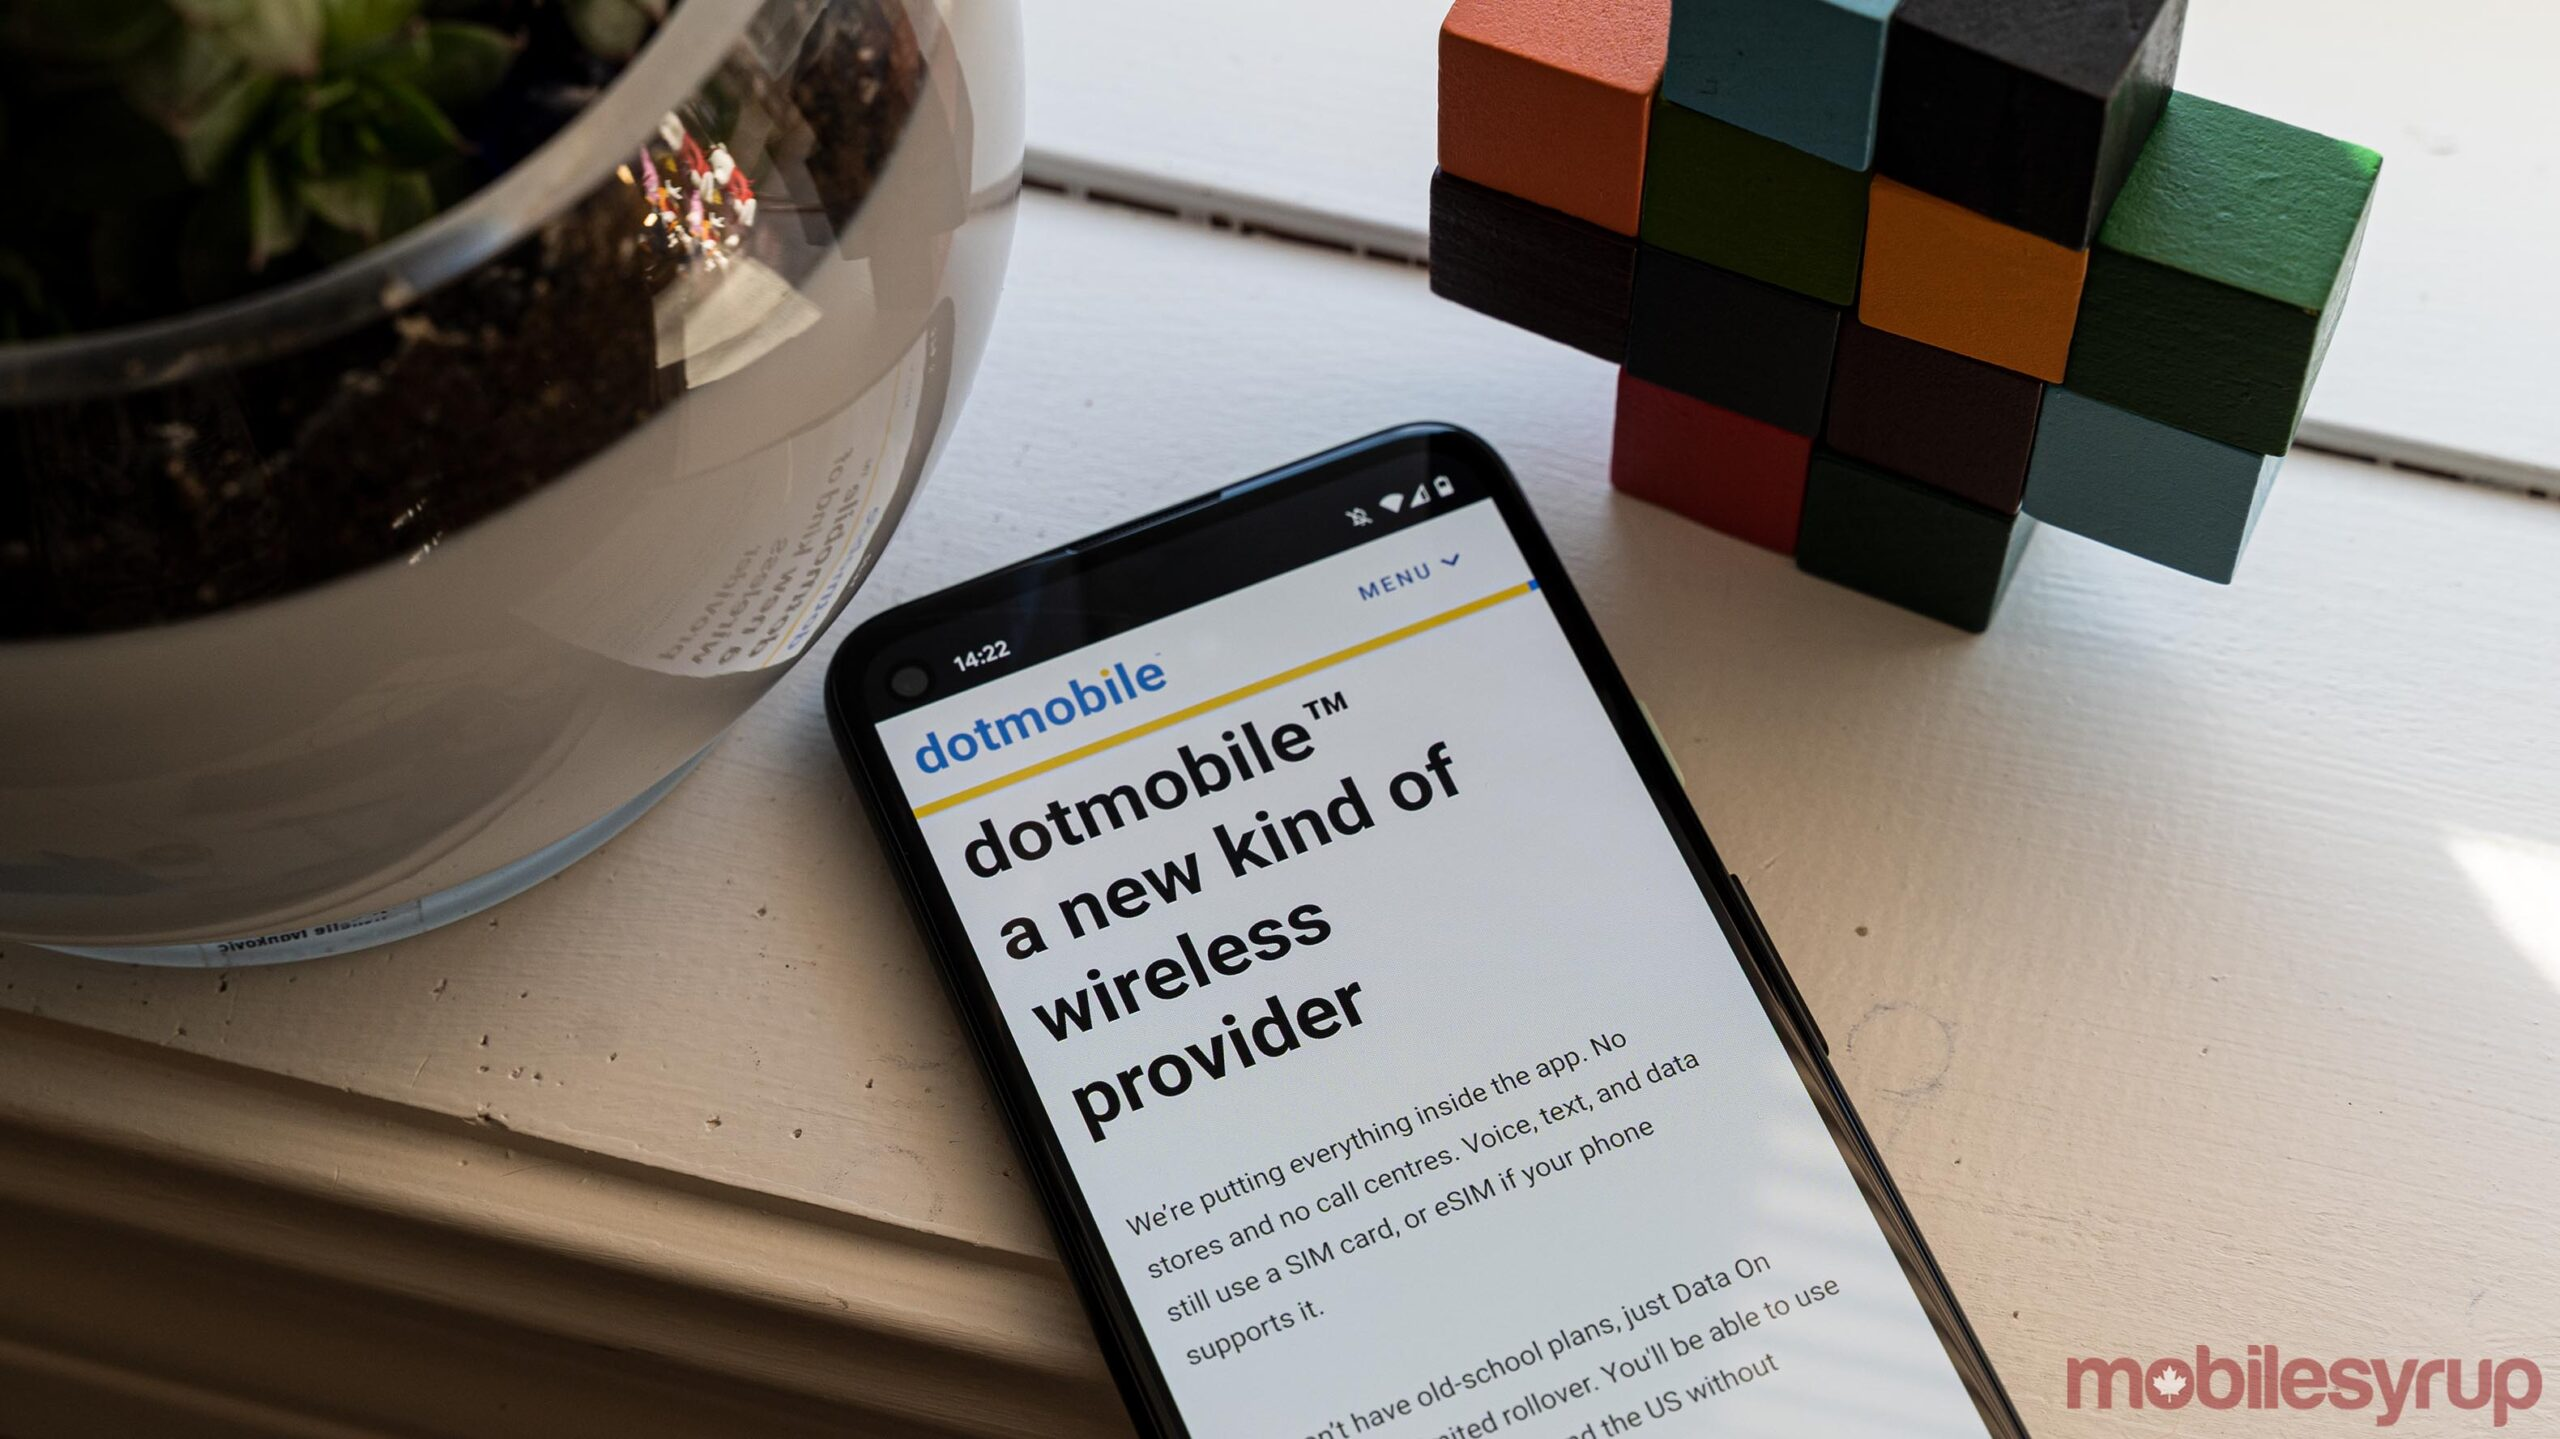 dotmobile website on Android